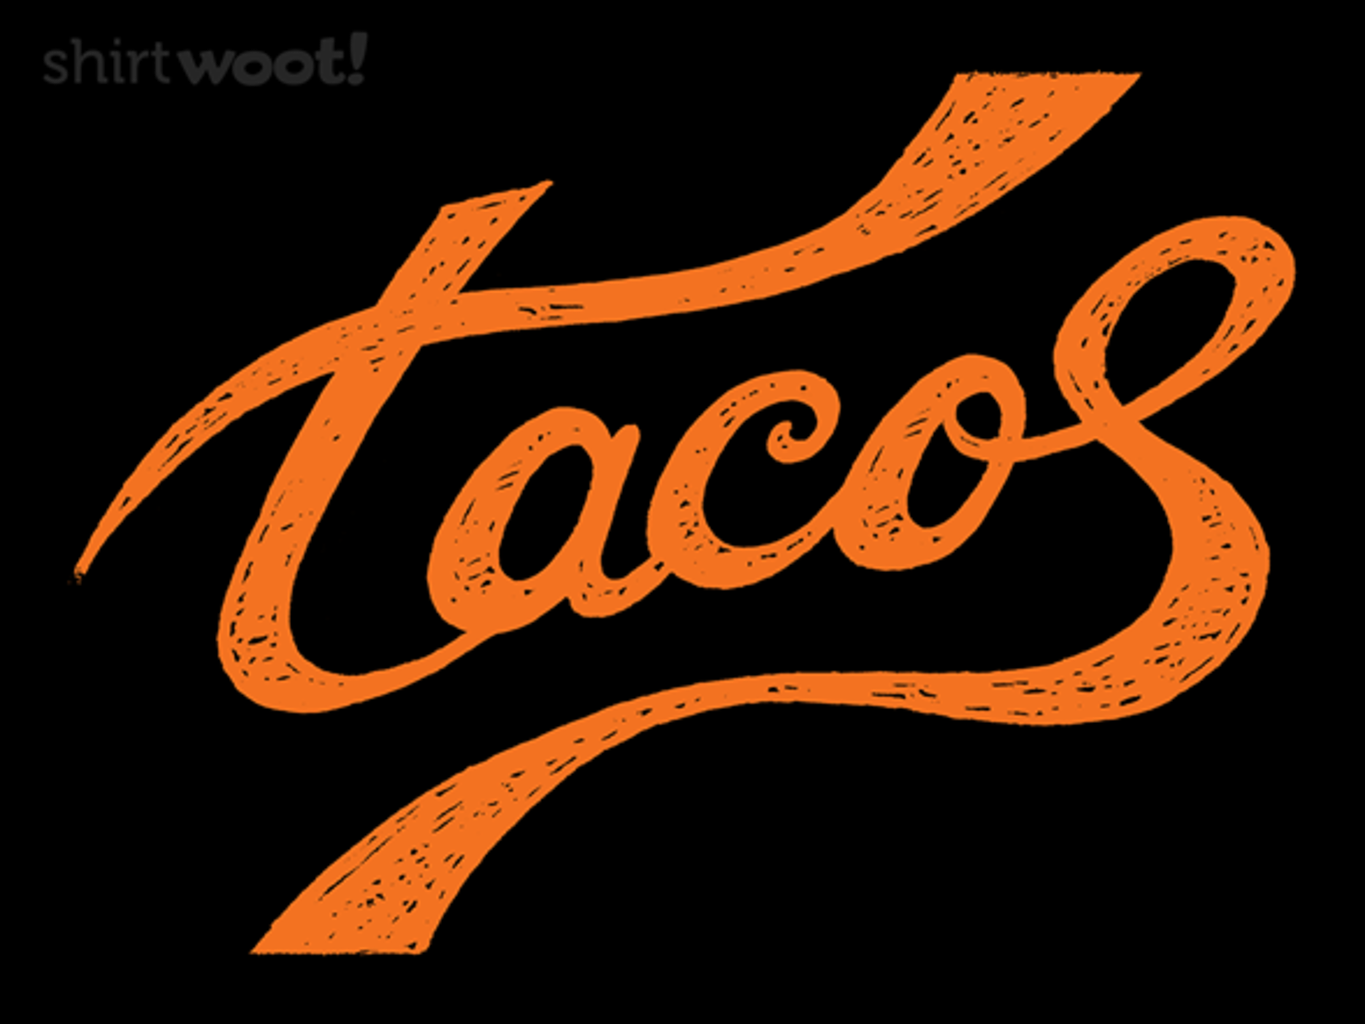 Woot!: Tacos Are My Thing